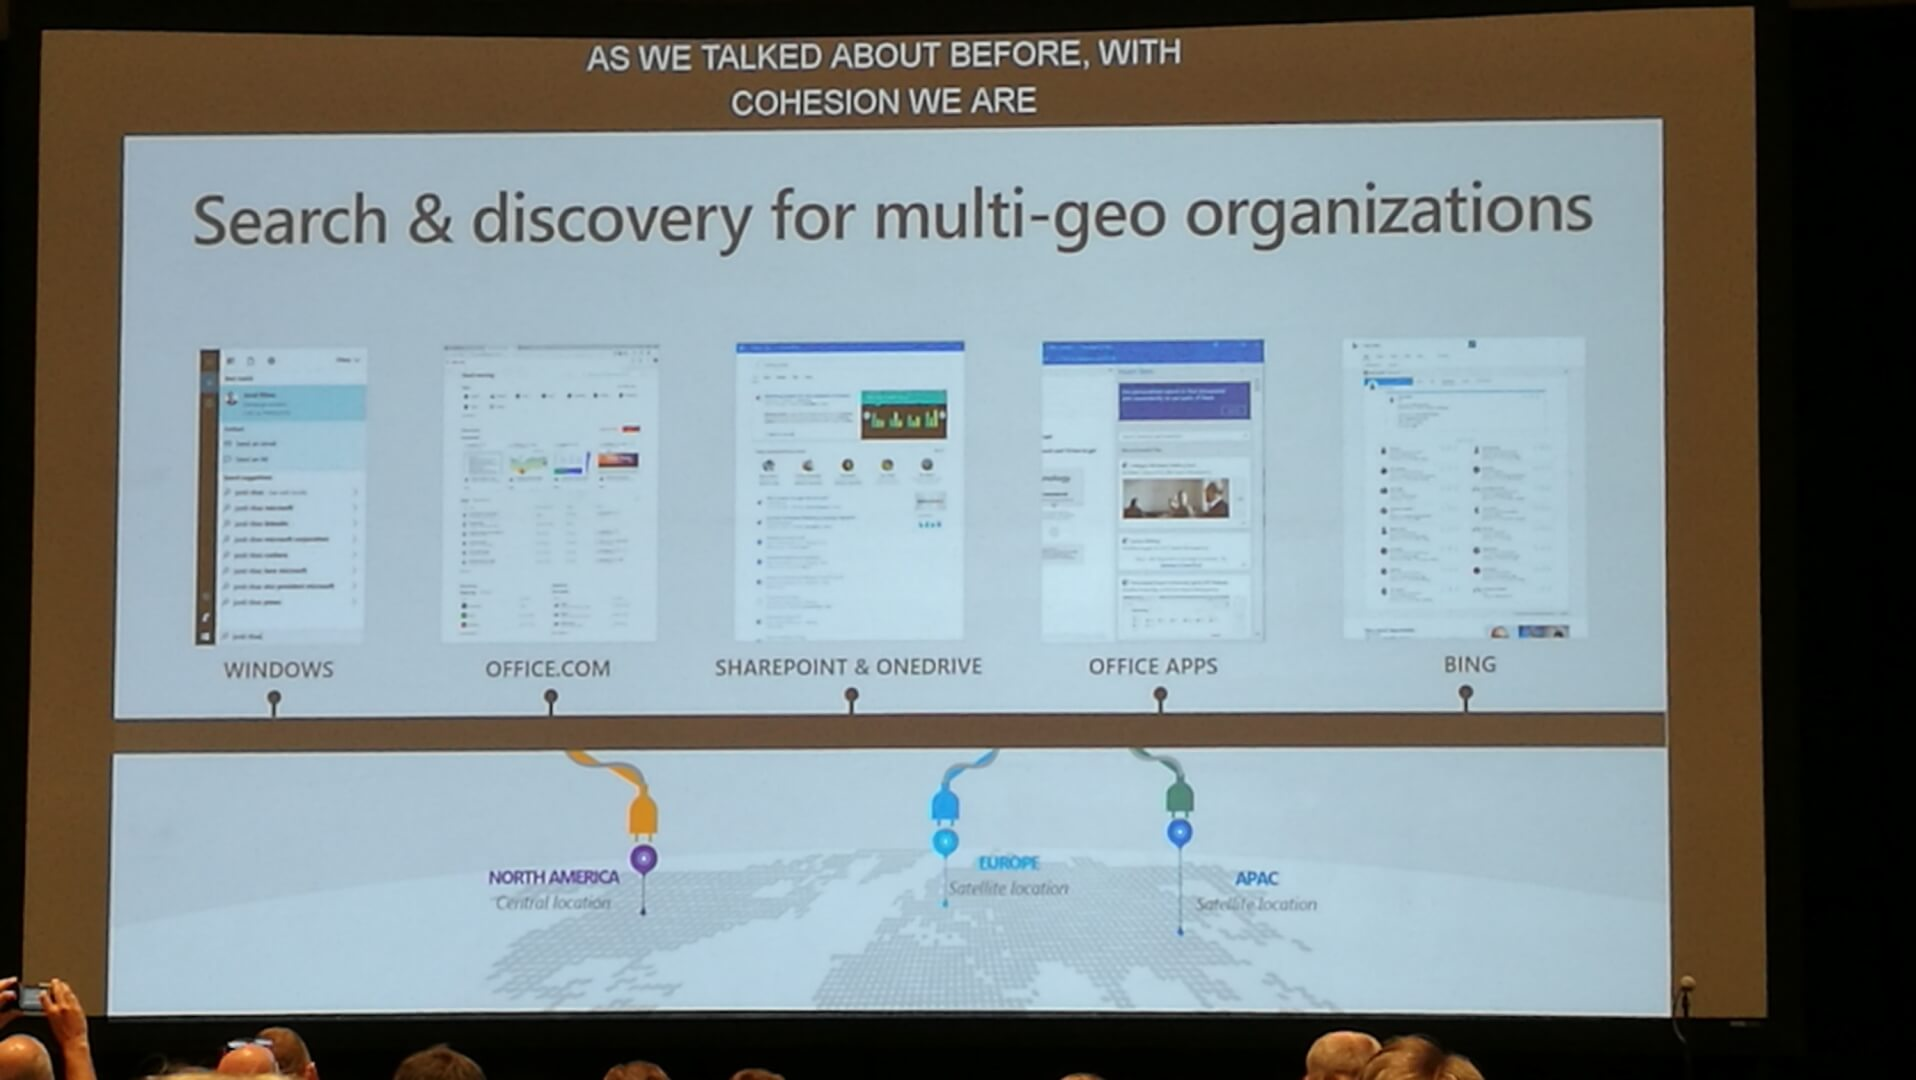 Texte de remplacement généré par une machine: ASWÈTA ED ABOUT BEFORE, WITH COHESION WE ARE Search & discovery for multi-geo organizations WINDOWS OFFICE.COM NORTH SHAREPOINT & ONEDRIVE OFFICE APPS APAC BING